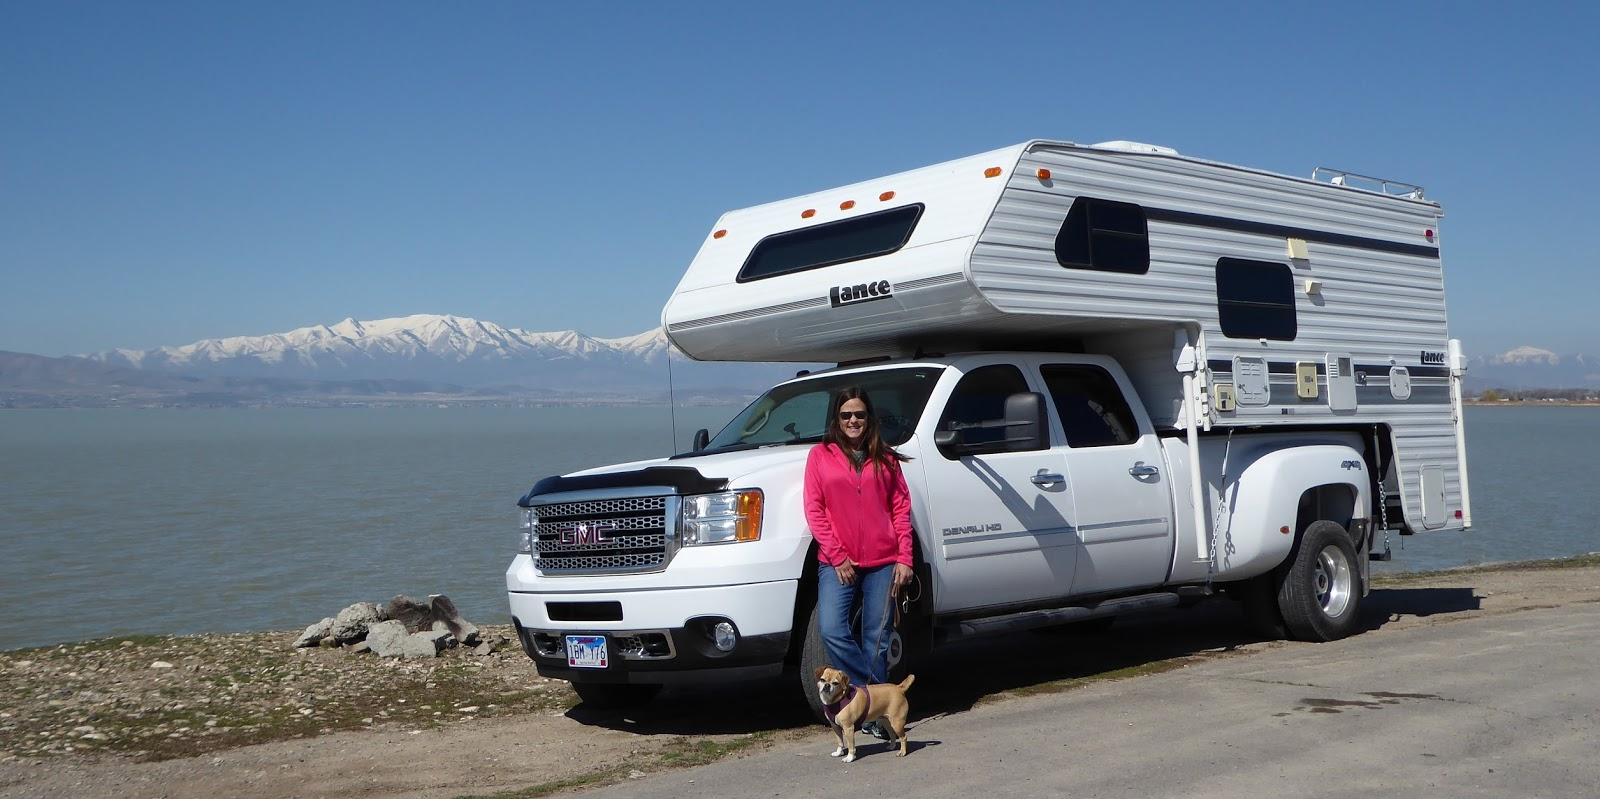 Jim and barb 39 s rv adventure going from 400 to 100 square feet for Rv square footage